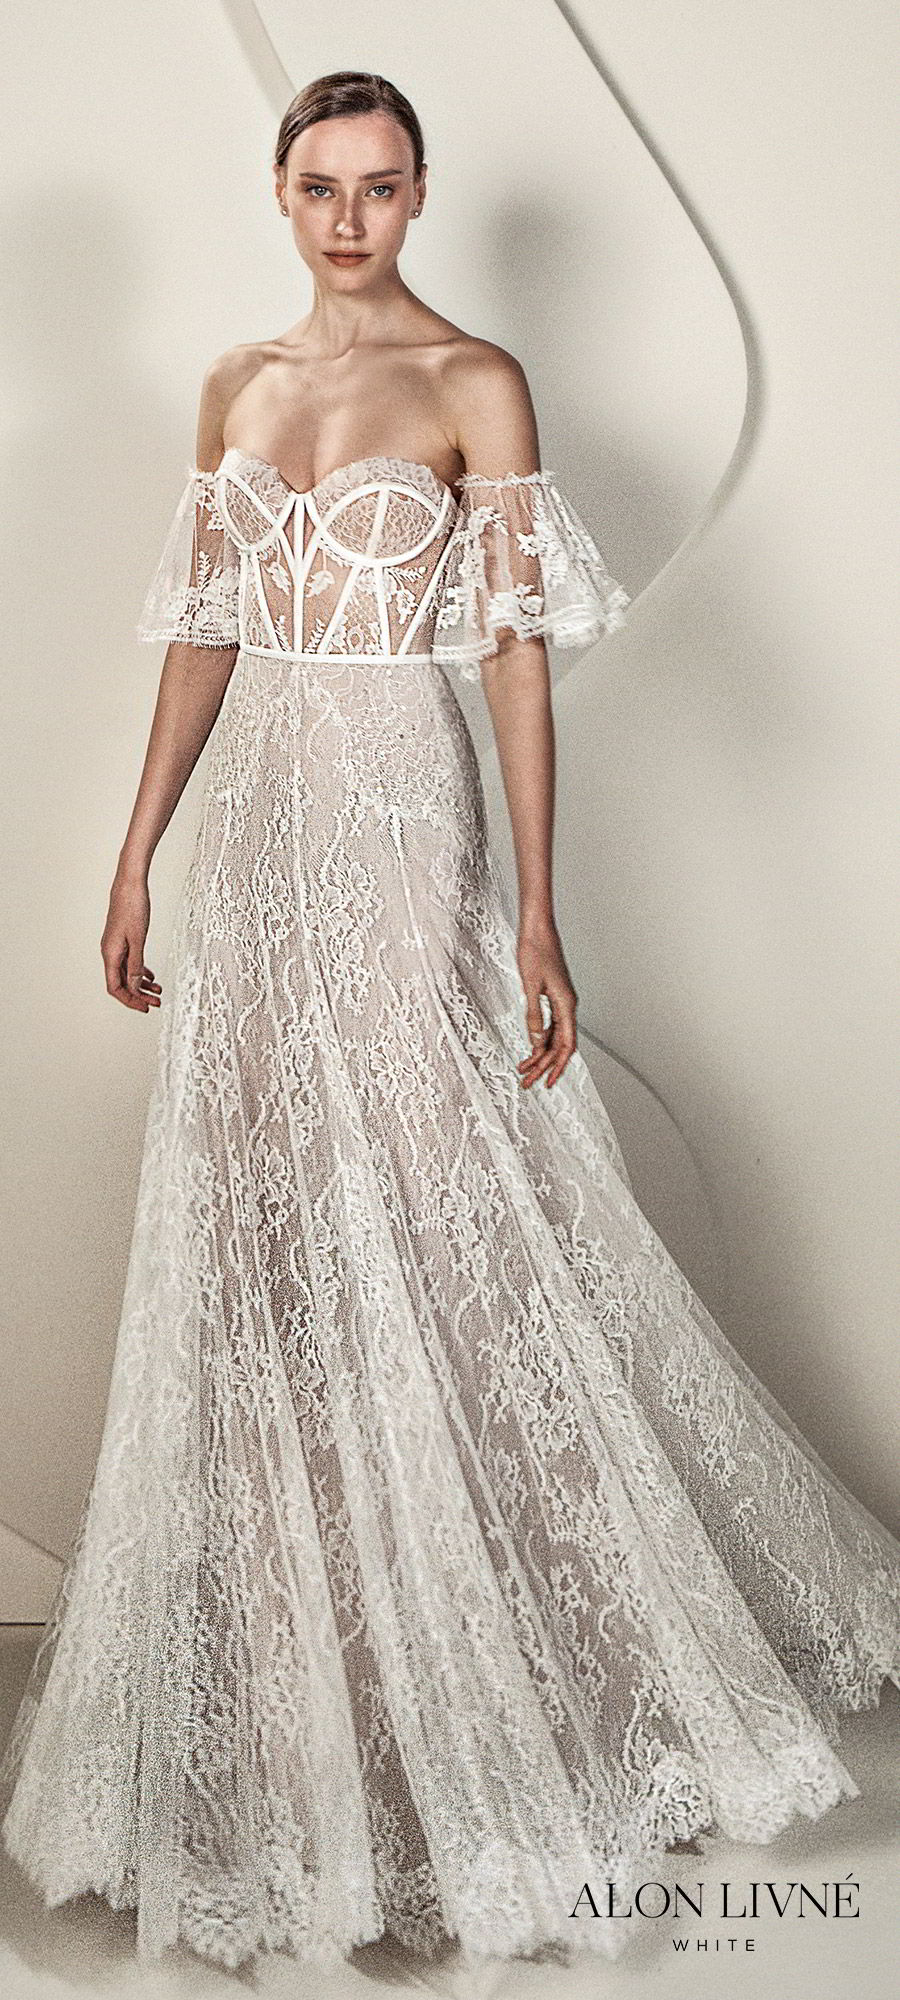 alon livne white spring 2020 bridal strapless sweetheart detached sheer flutter sleeves illusion bodice modified a line fit flare lace wedding dress (eve) romantic boho chic mv